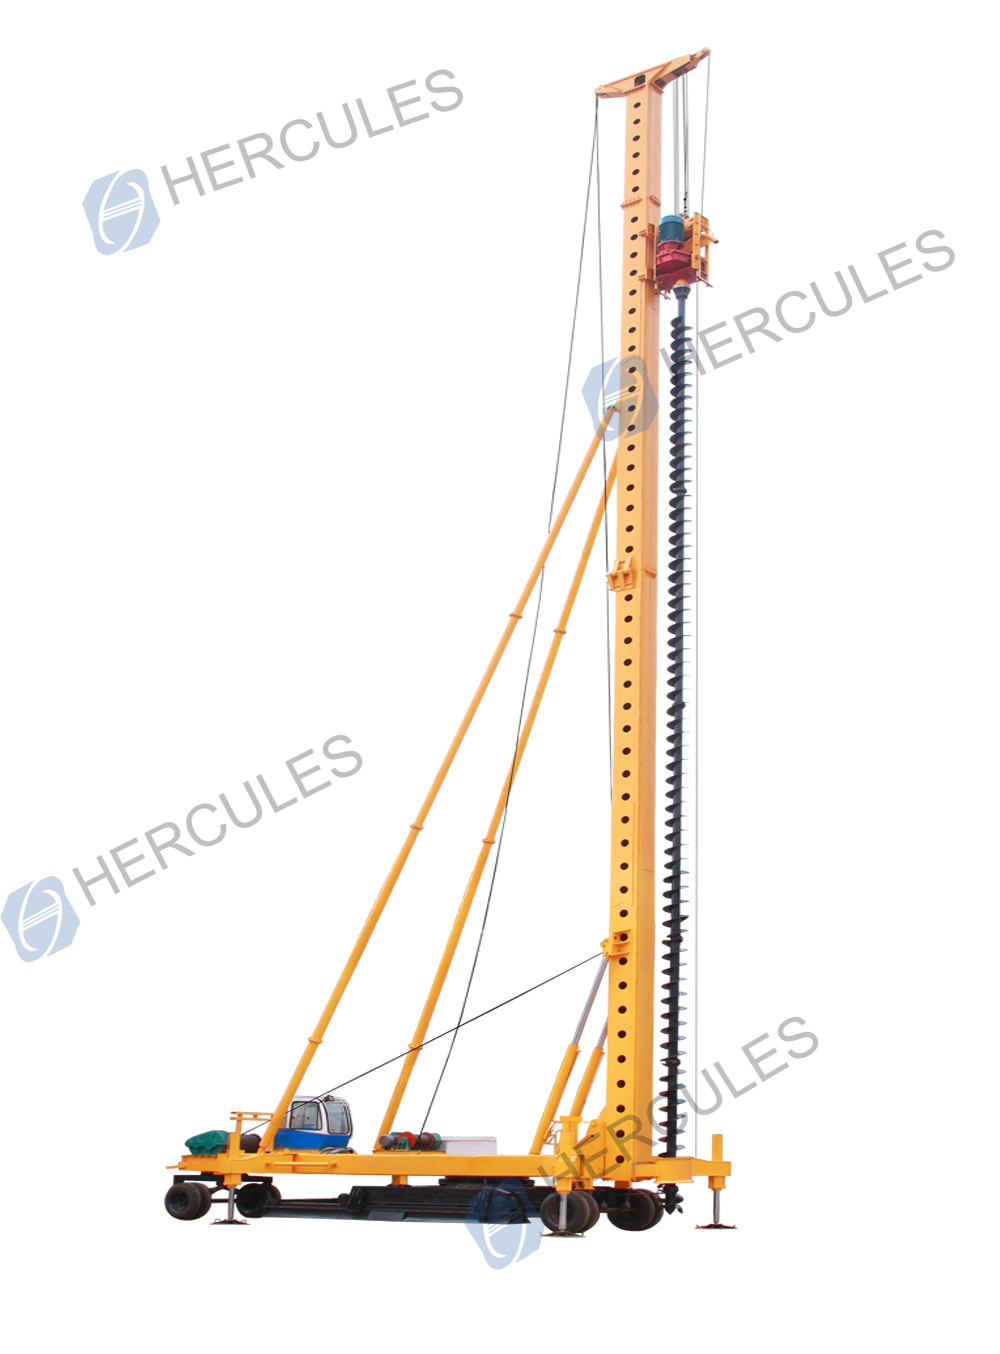 Long Auger Drilling Rig Equippped with Wheels